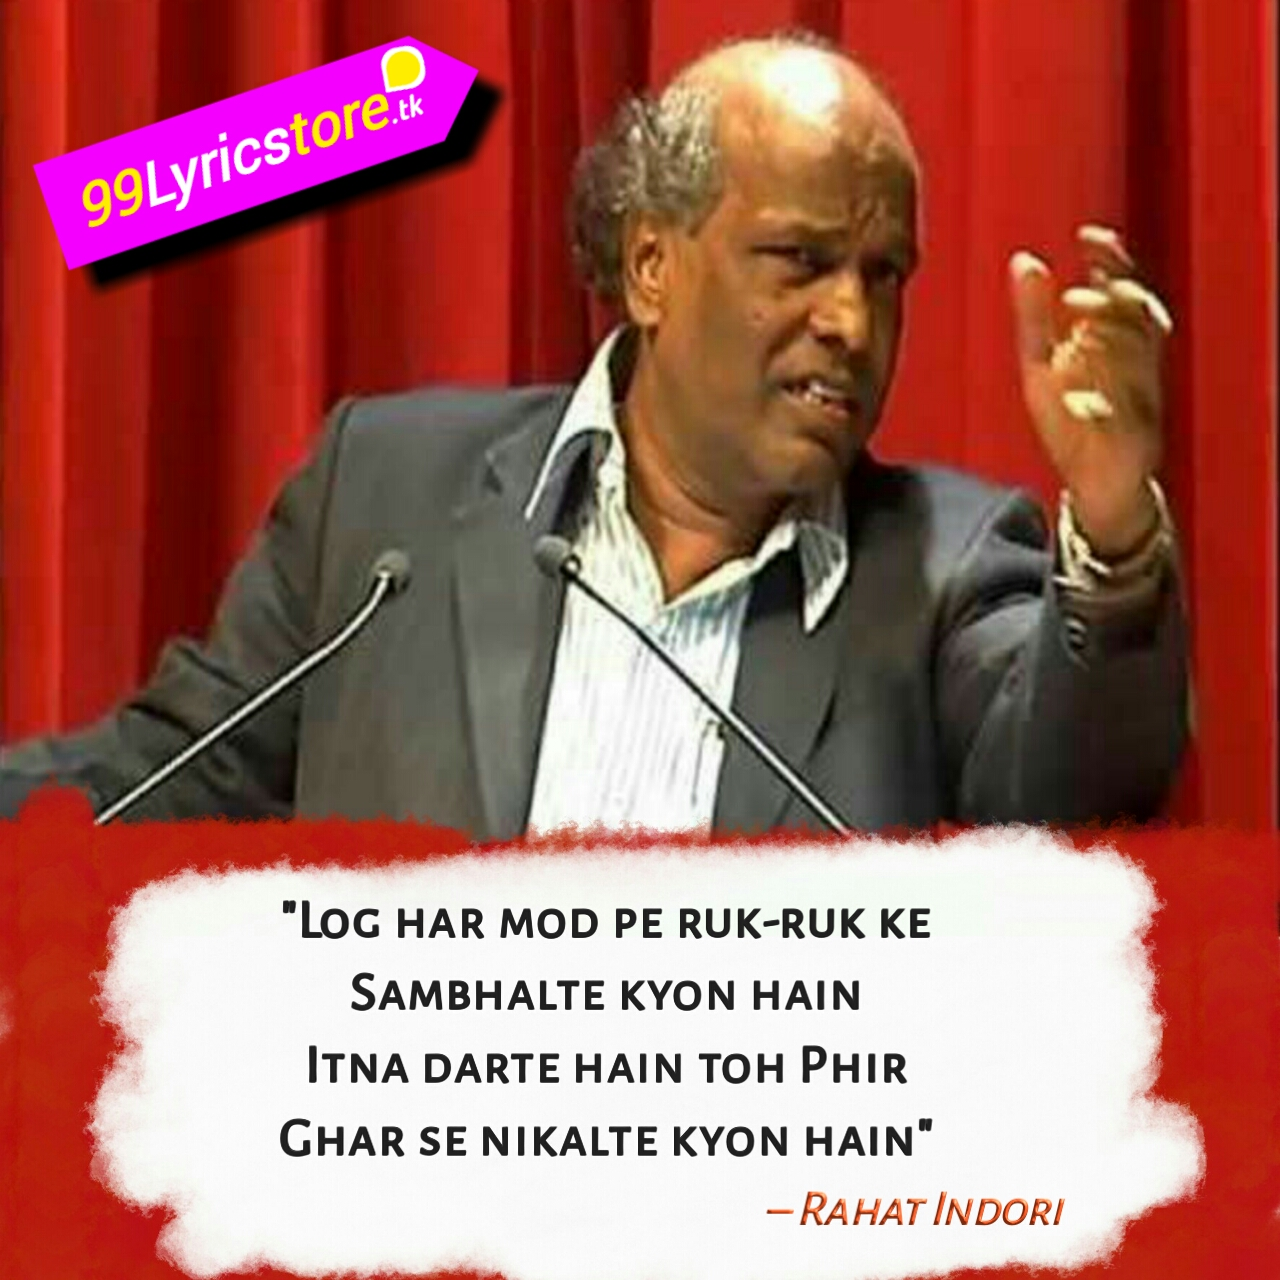 Log Har Mod Pe – Poetry | Rahat Indori | Ghazal, Best Poetry of Rahat indori, Ghazal Poetry ,Love Poetry, Log har mor pe ruk ruk ke  sambhalte kyon hain Itana darte hain to phir  ghar se nikalte kyon hain, Love Poetry, Rahat Indori. Rahat Indori All Quotes, Happy Quotes, Poem Quotes, True Quotes, Quotable Quotes, rahat indori ghazals, rahat indori kavita, rahat indori sad shayari, rahat indori latest shayari in hindi, Log har mor pe ruk ruk ke  sambhalte kyon hain  Itana darte hain to phir  ghar se nikalte kyon hain,  Rahat Indori Shayari image download, Rahat Indori Ghazal image download